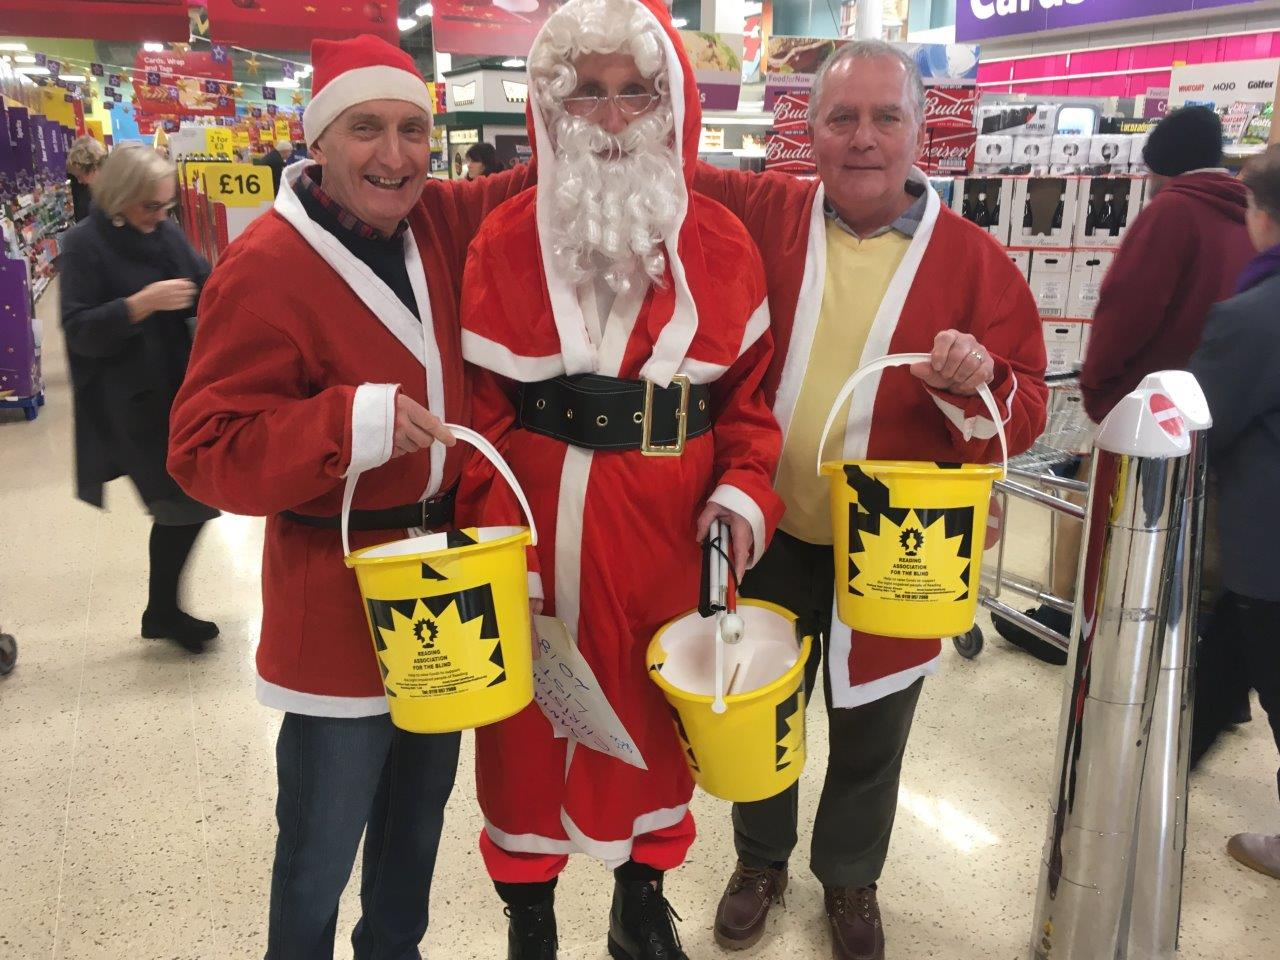 Steve, Richard and Chris at Tesco Collection on 21 December 2018